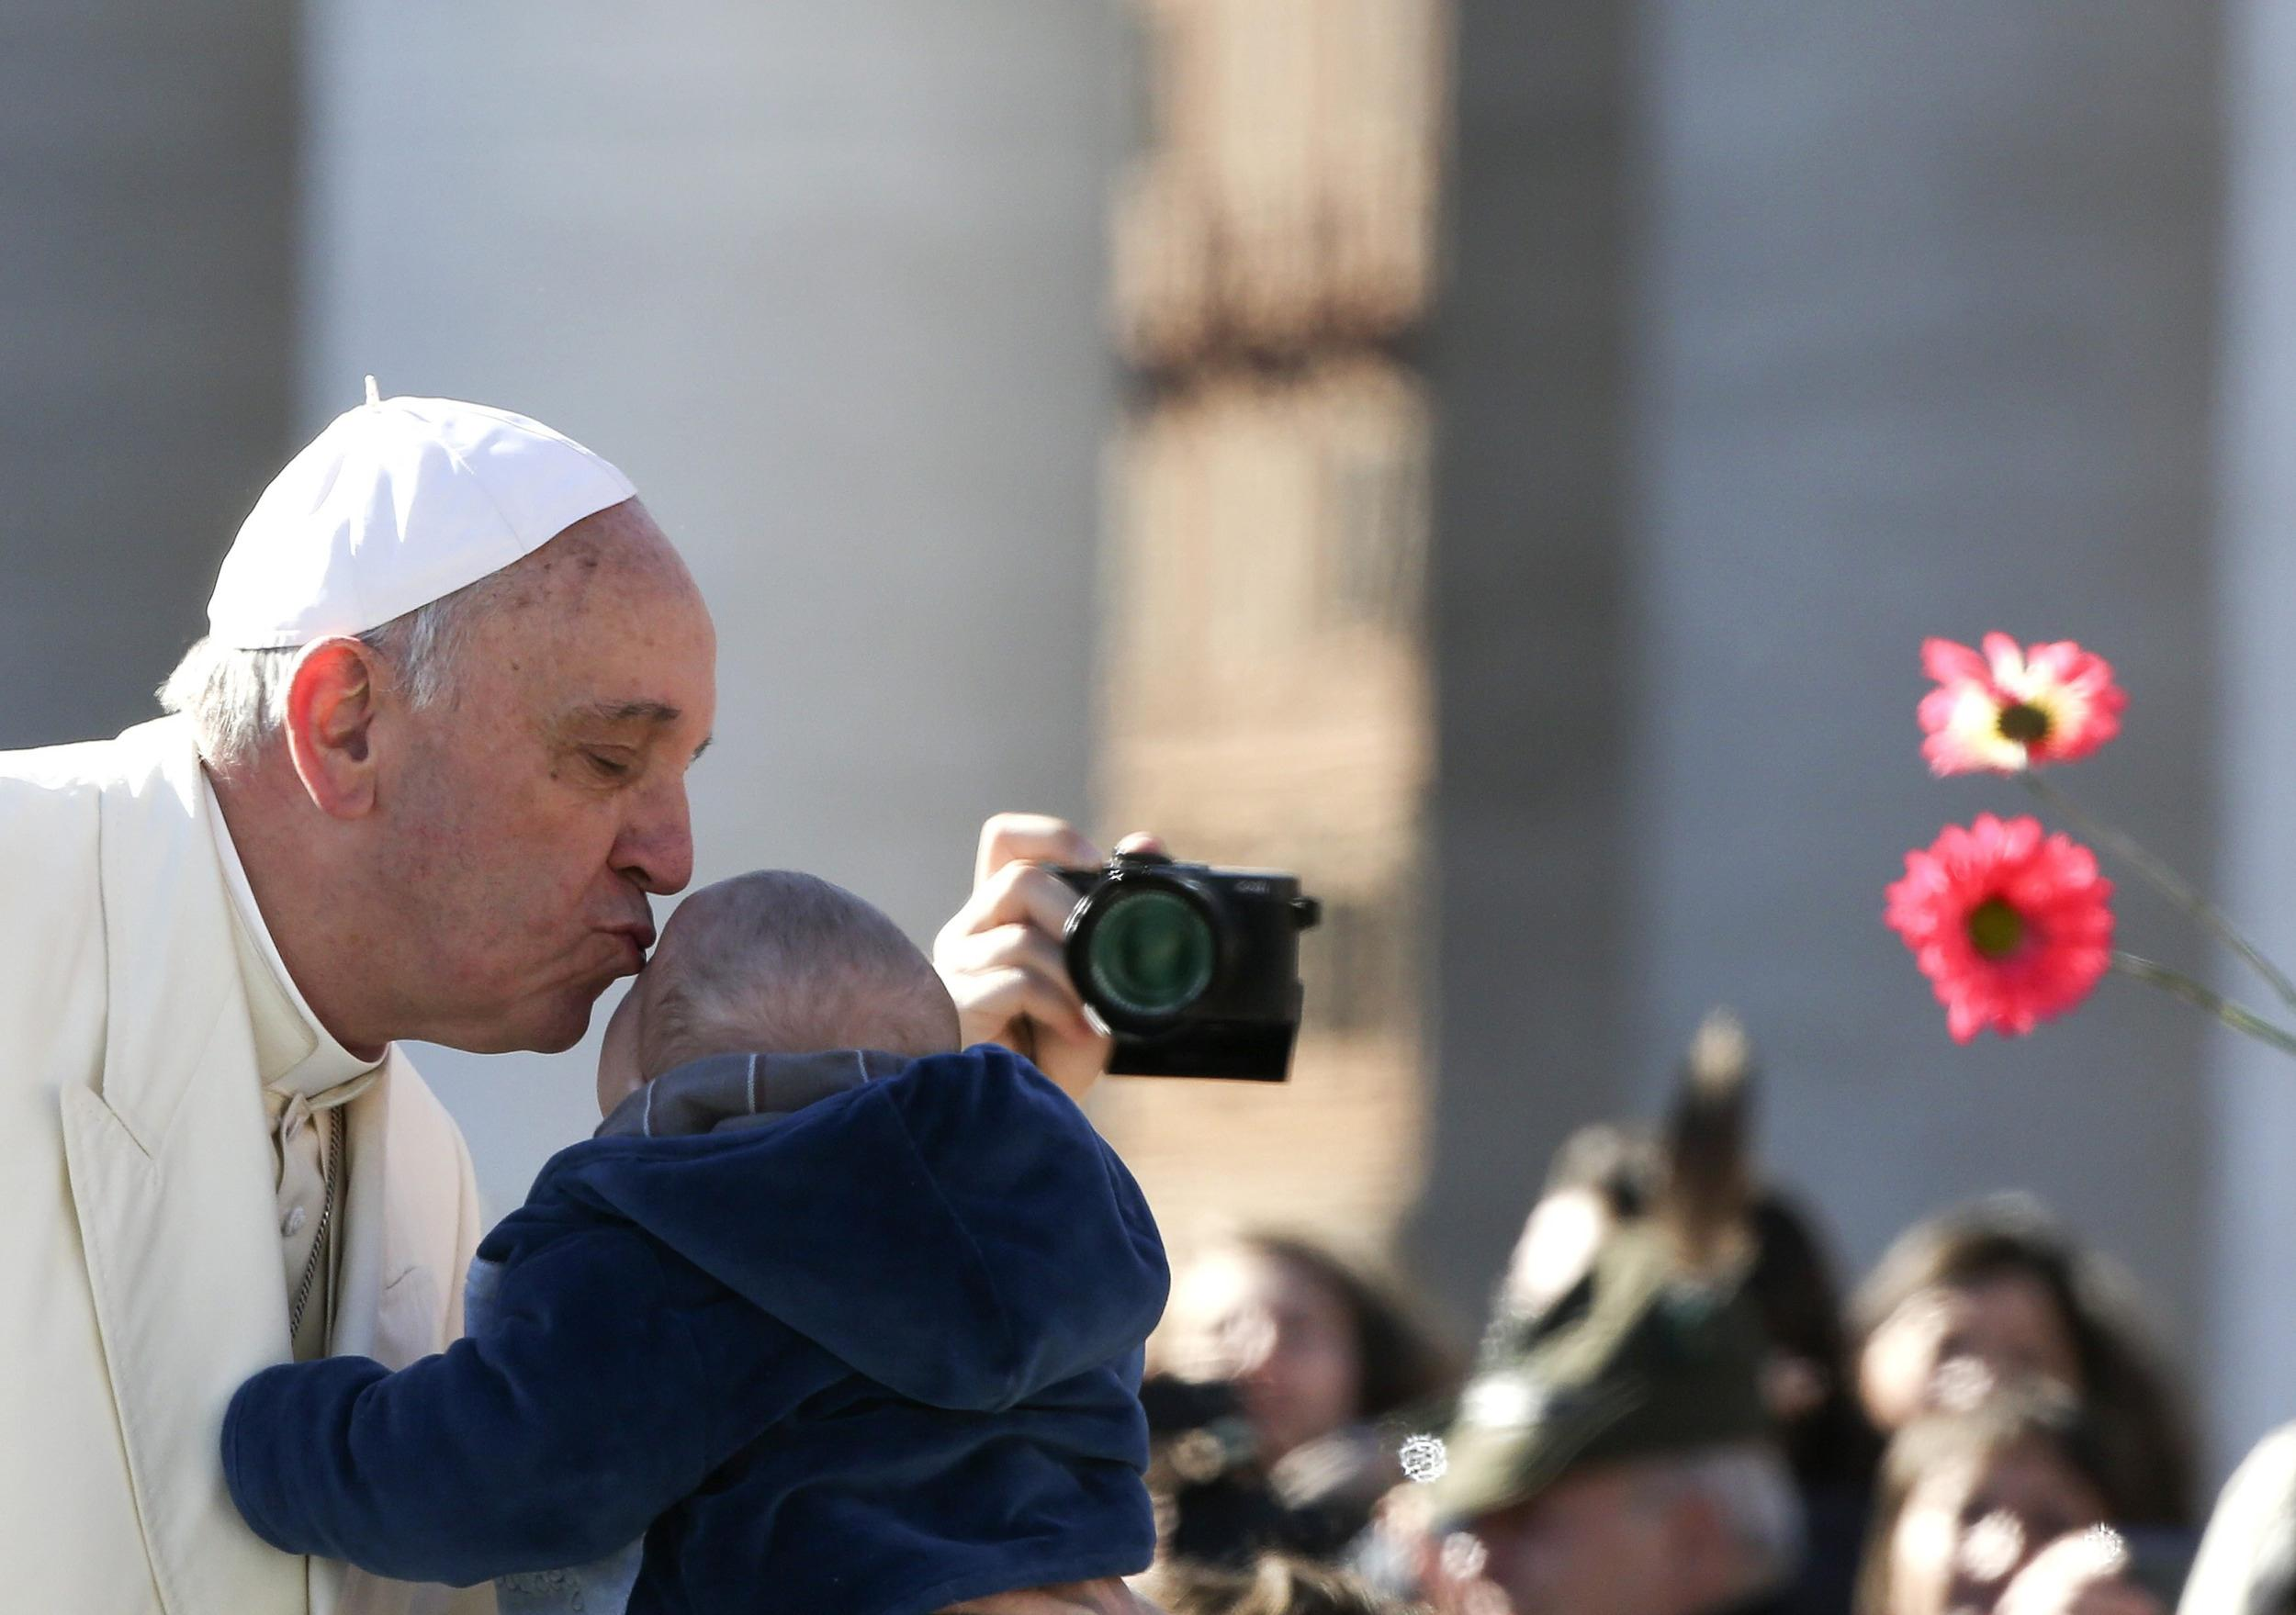 Image: Pope Francis kisses a child as he arrives to lead the general audience in Saint Peter's Square at the Vatican